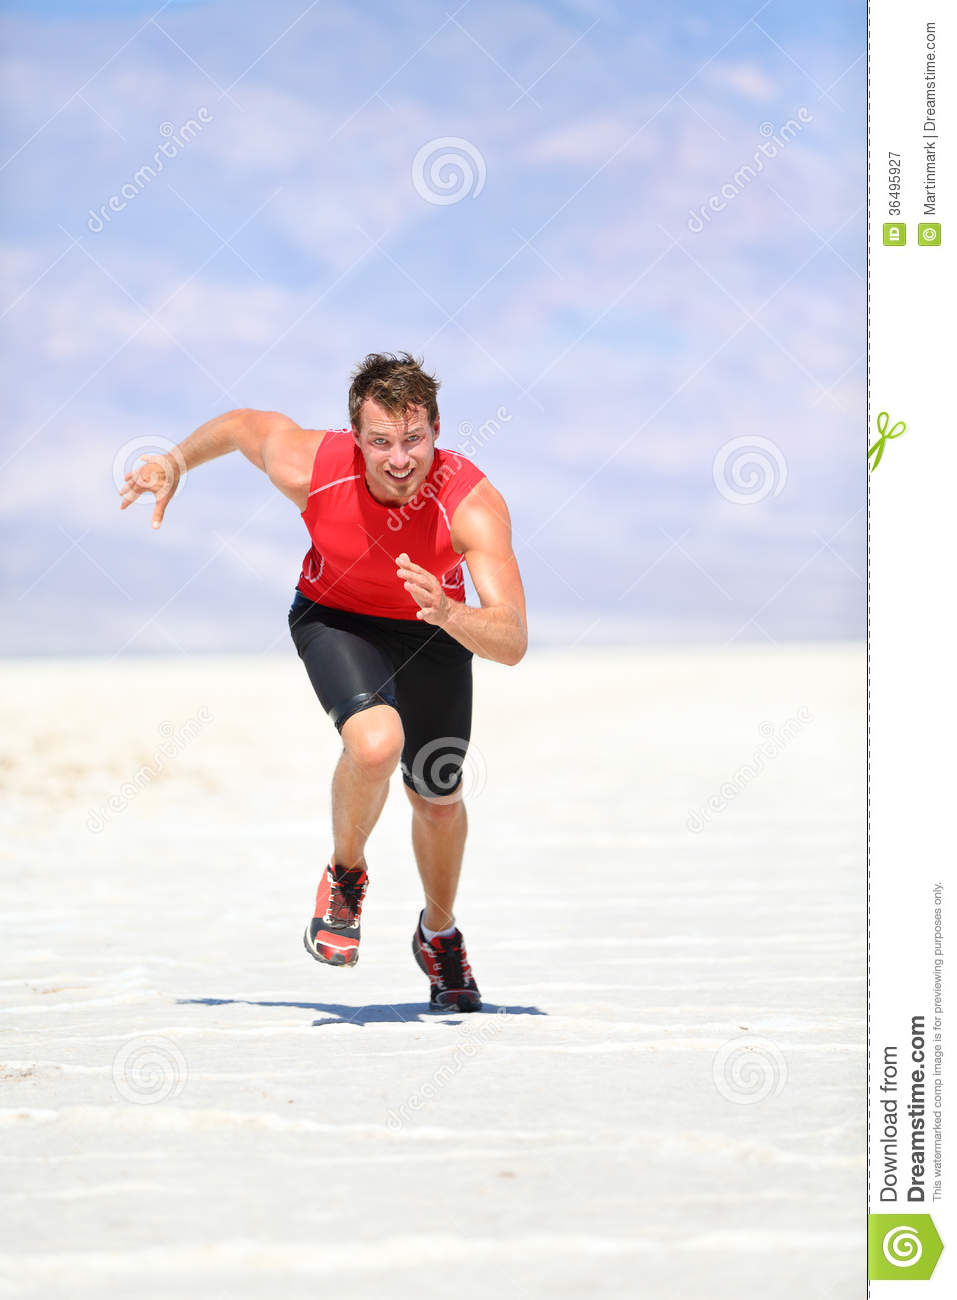 Runner - Man Running Sprinting Outdoor Royalty Free Stock ...